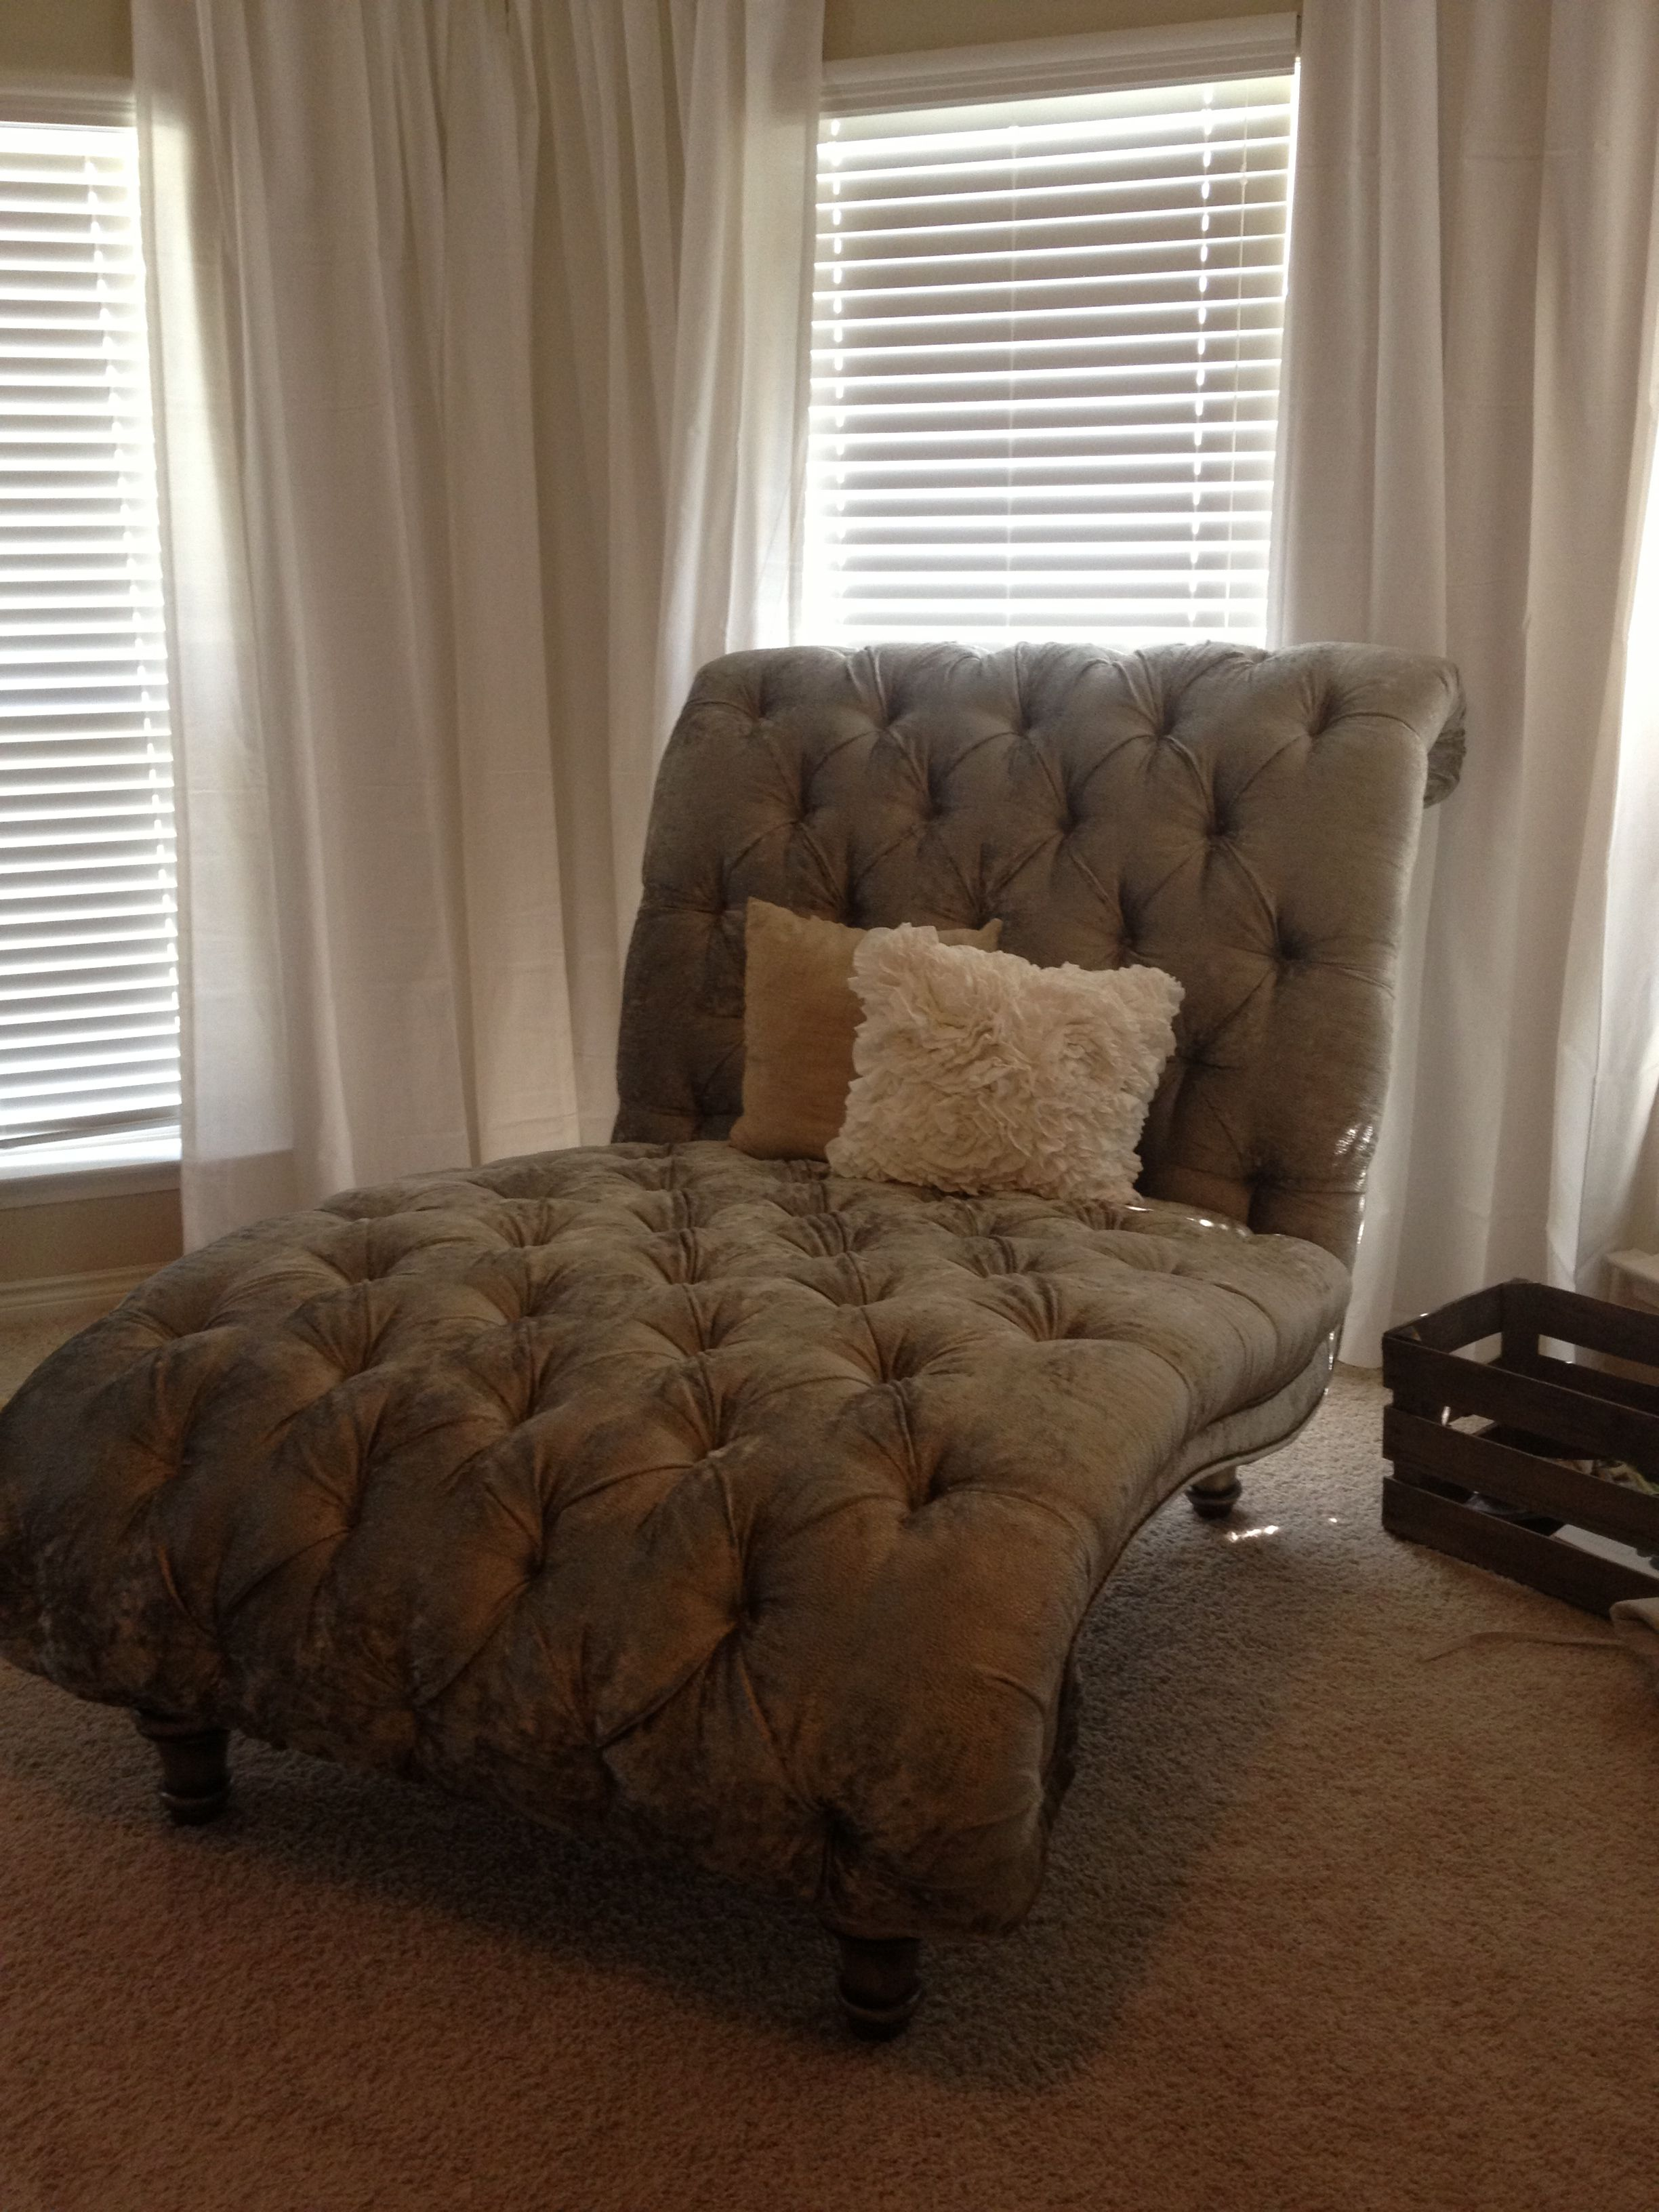 Tufted double chaise lounge chair in our master bedroom Chaise longue double a bascule